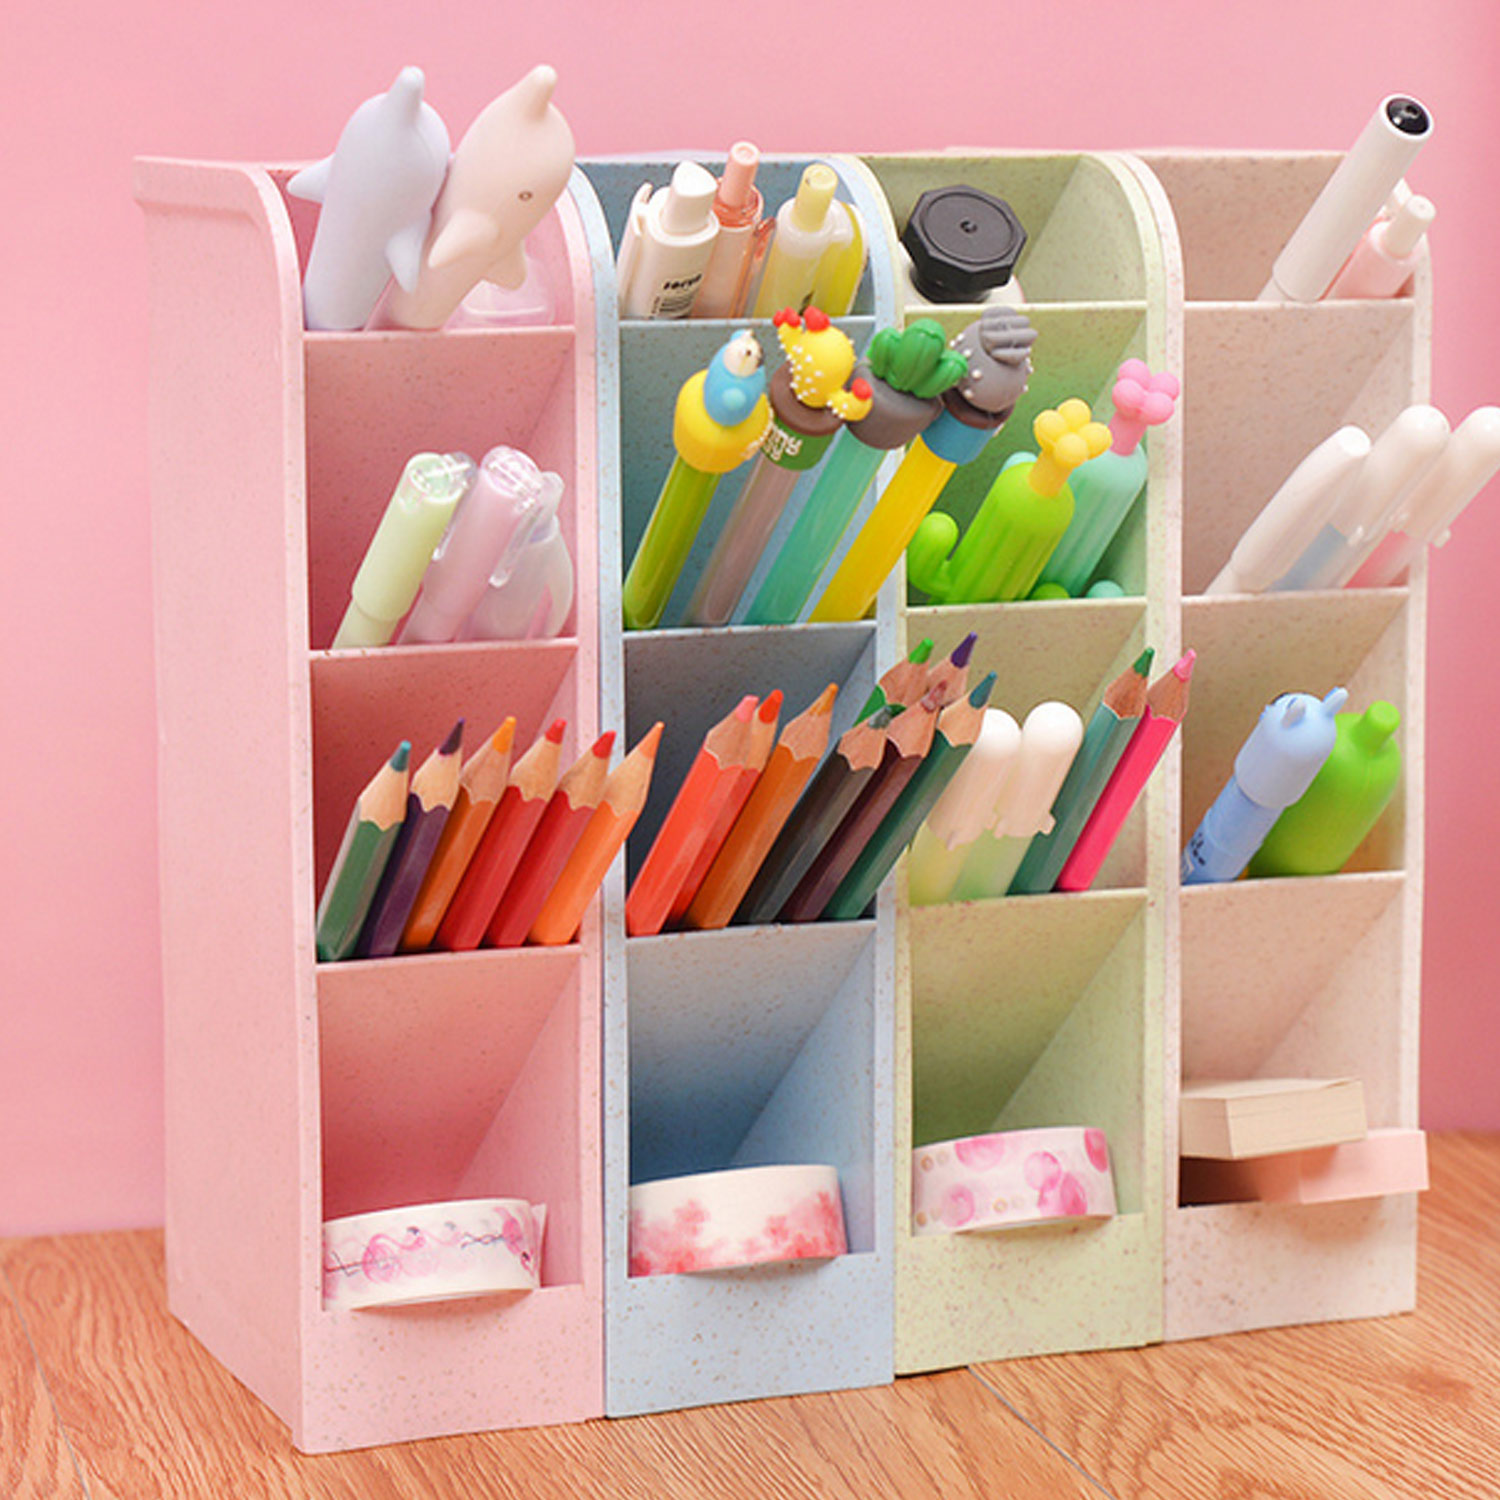 4PCS Assorted Colors 4-Grid Desktop Organizer Storage Box Caddy for Stationery Socks Makeup Tools Home Office School Supplies